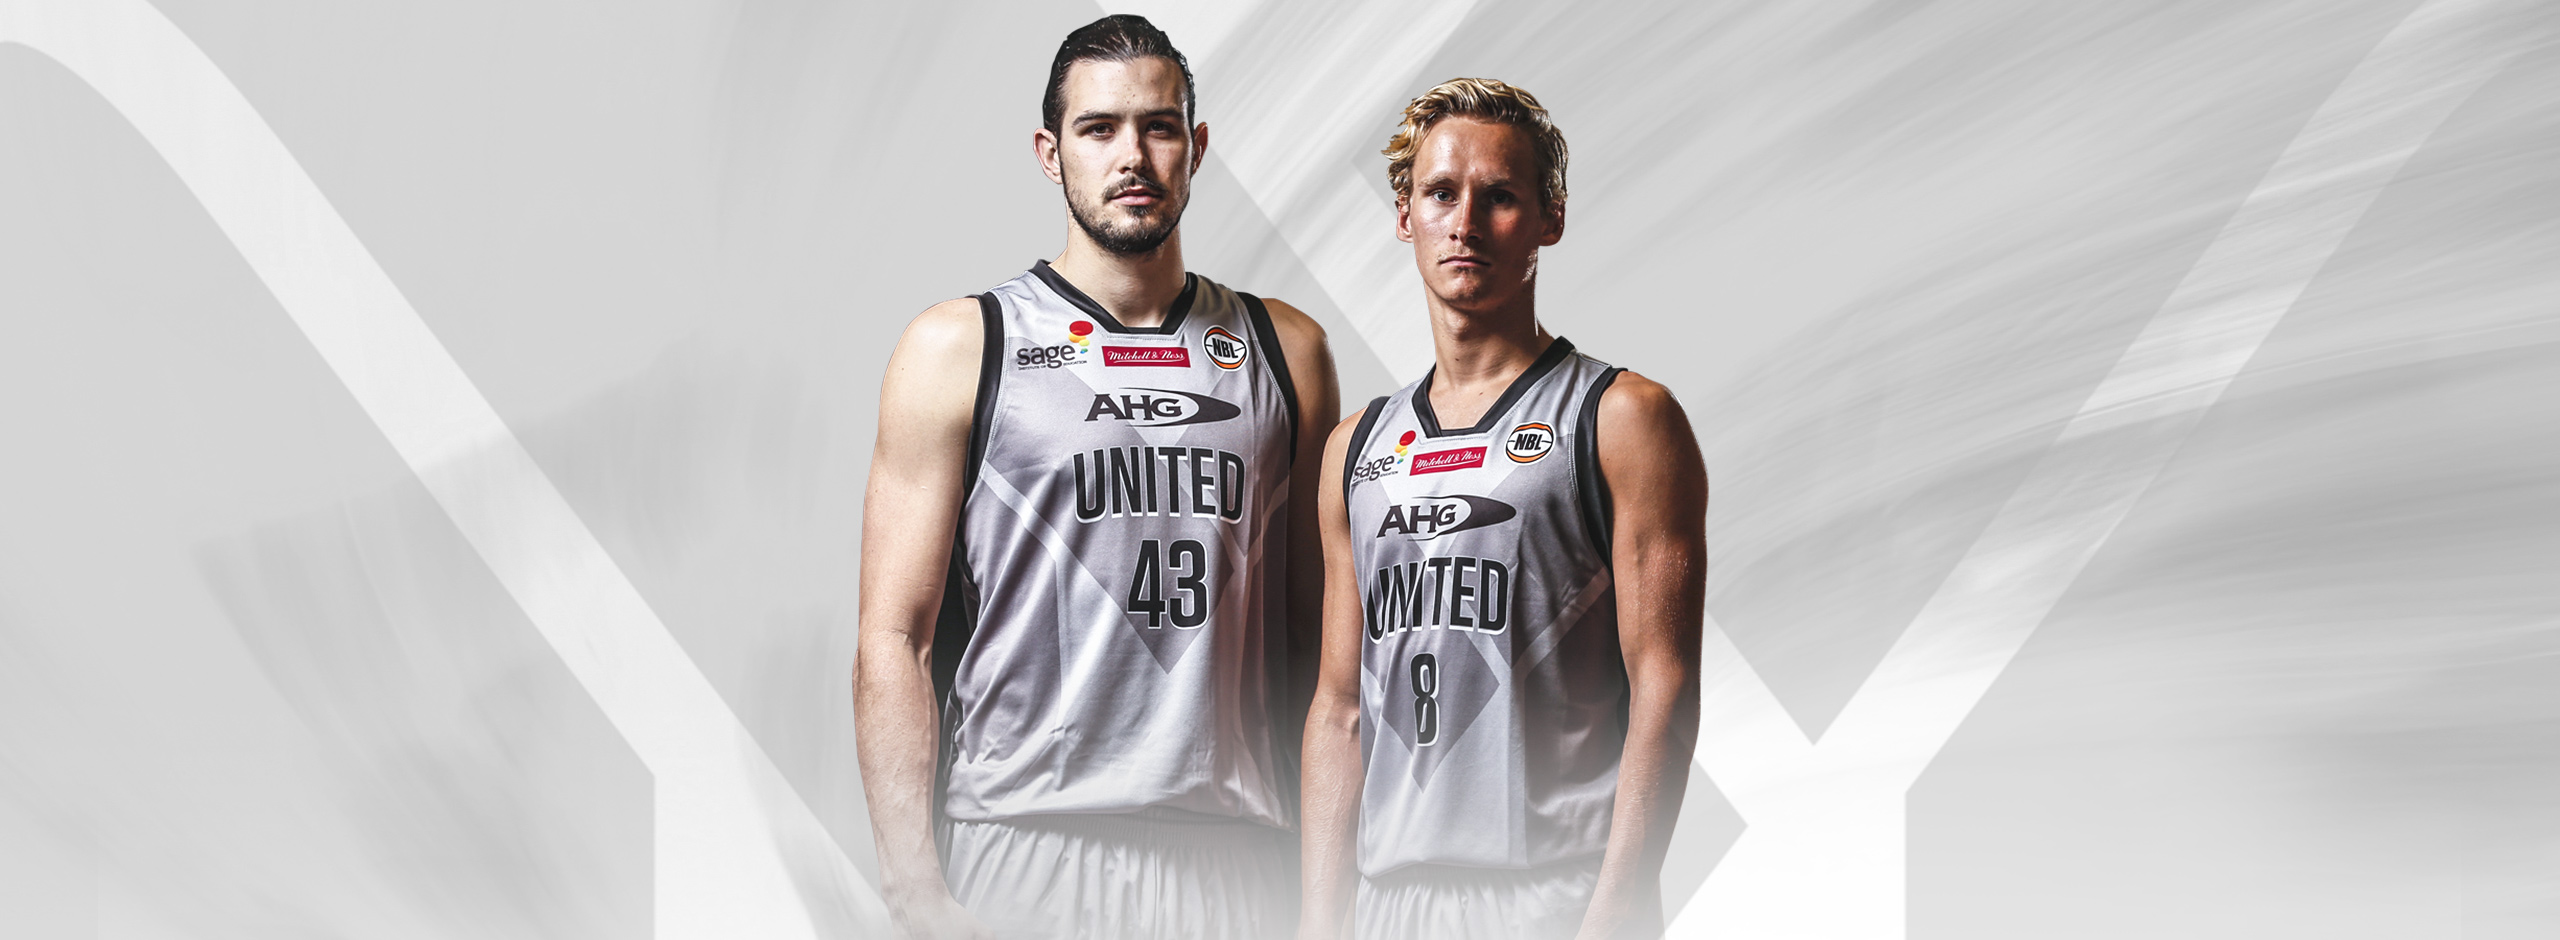 d18273689e Latest News | 1 min read Melbourne releases new United kits